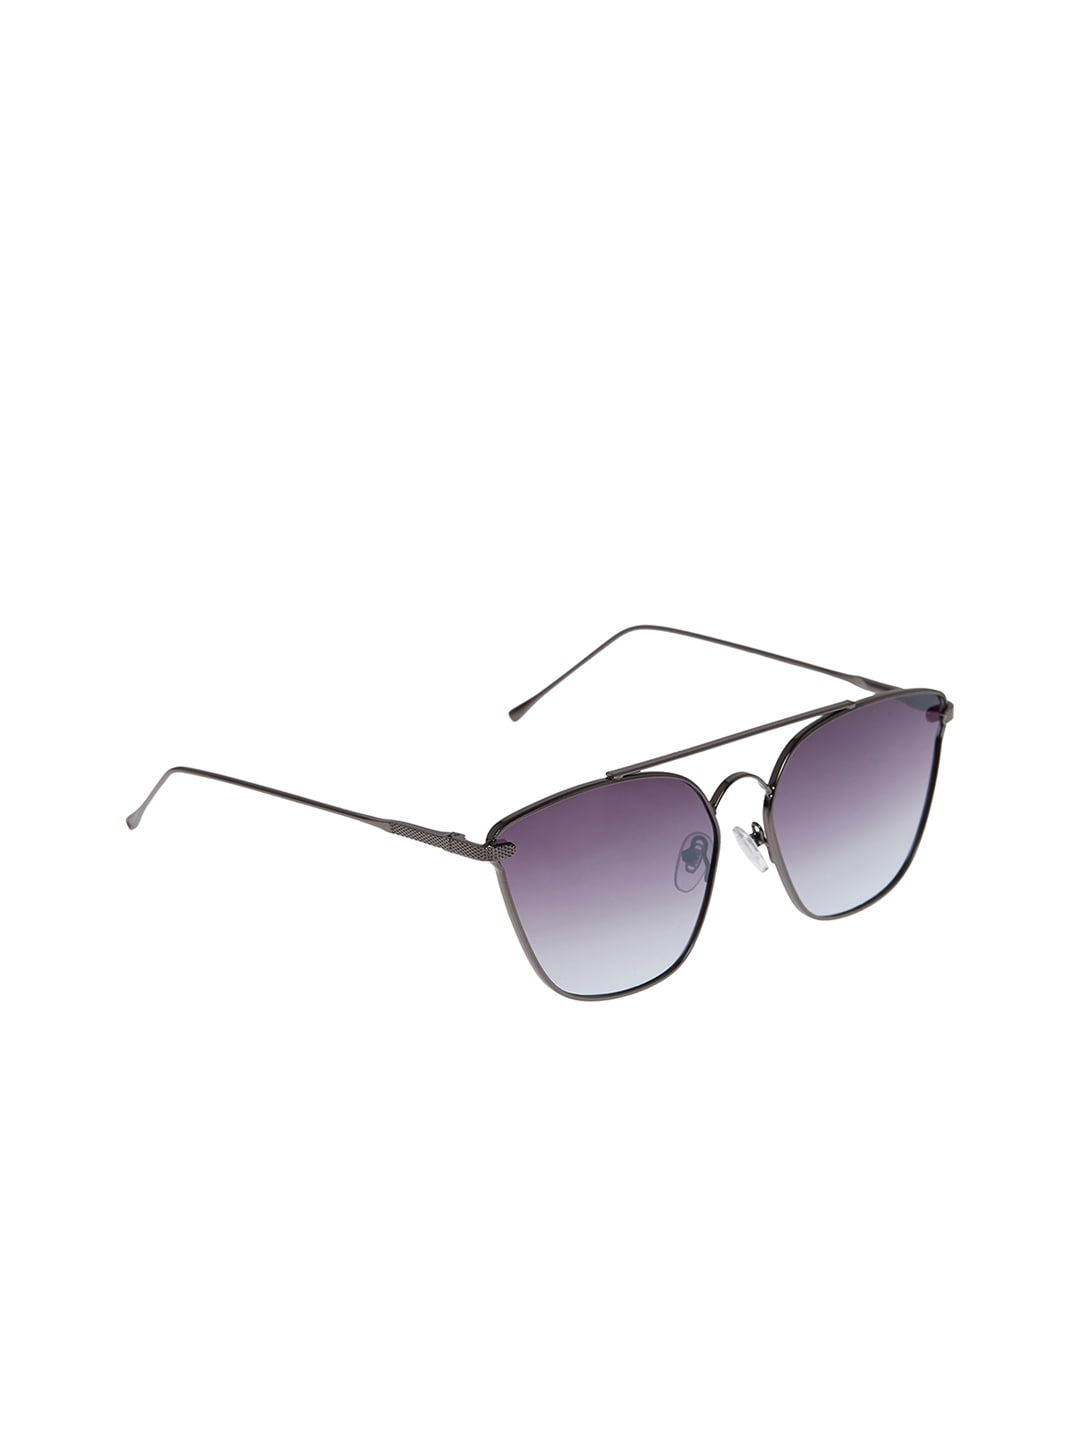 95bd45fb9b2d8 Sunglasses For Women - Buy Womens Sunglasses Online